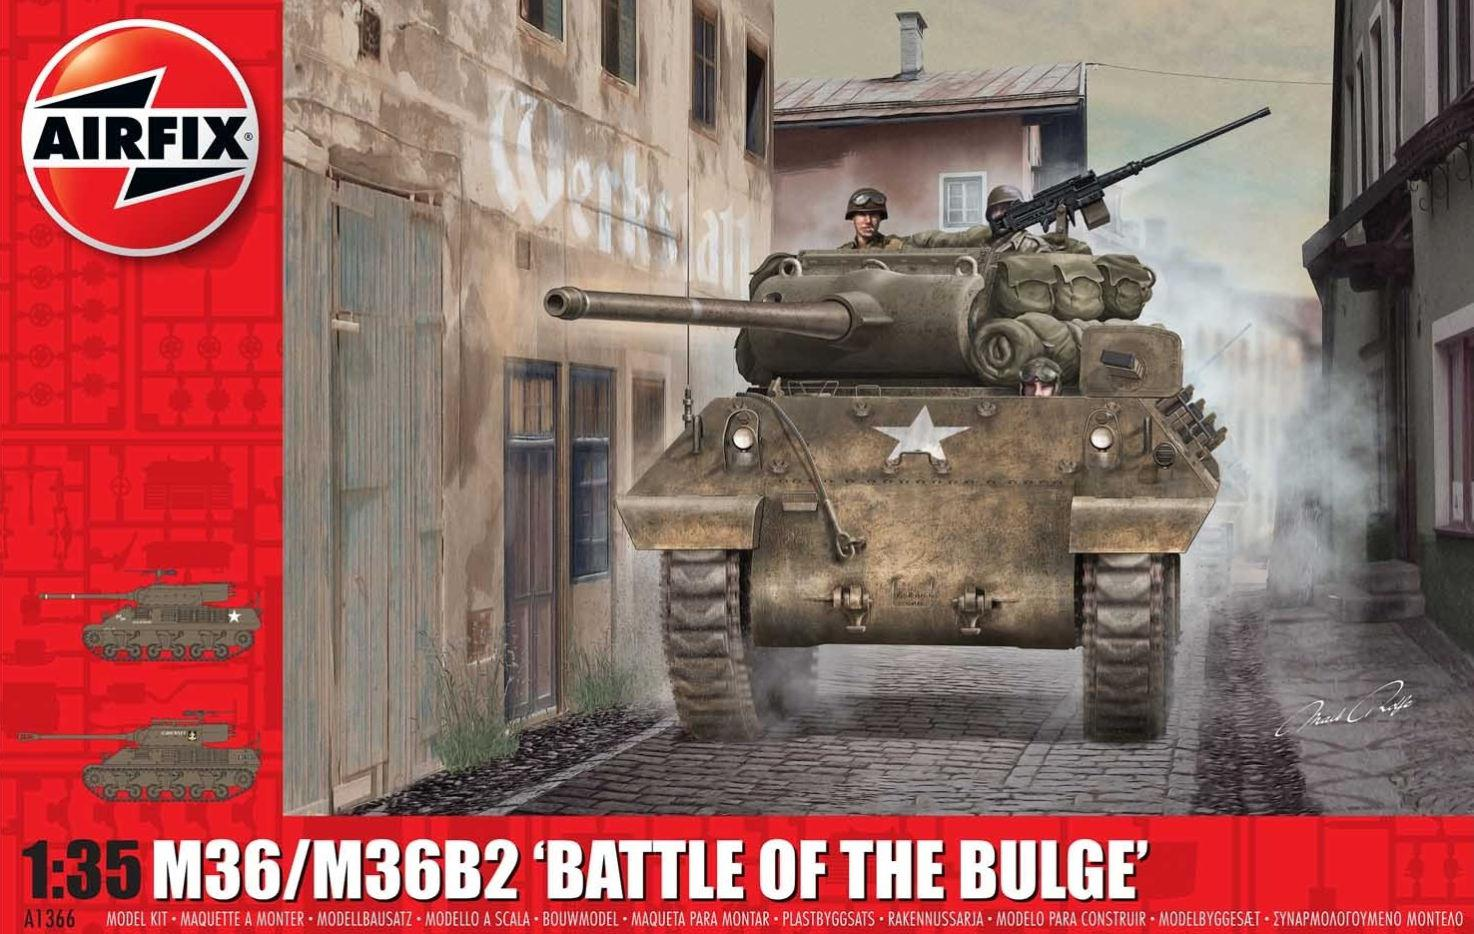 Airfix M36/M36B2 Battle of the Bulge 1:35 A1366